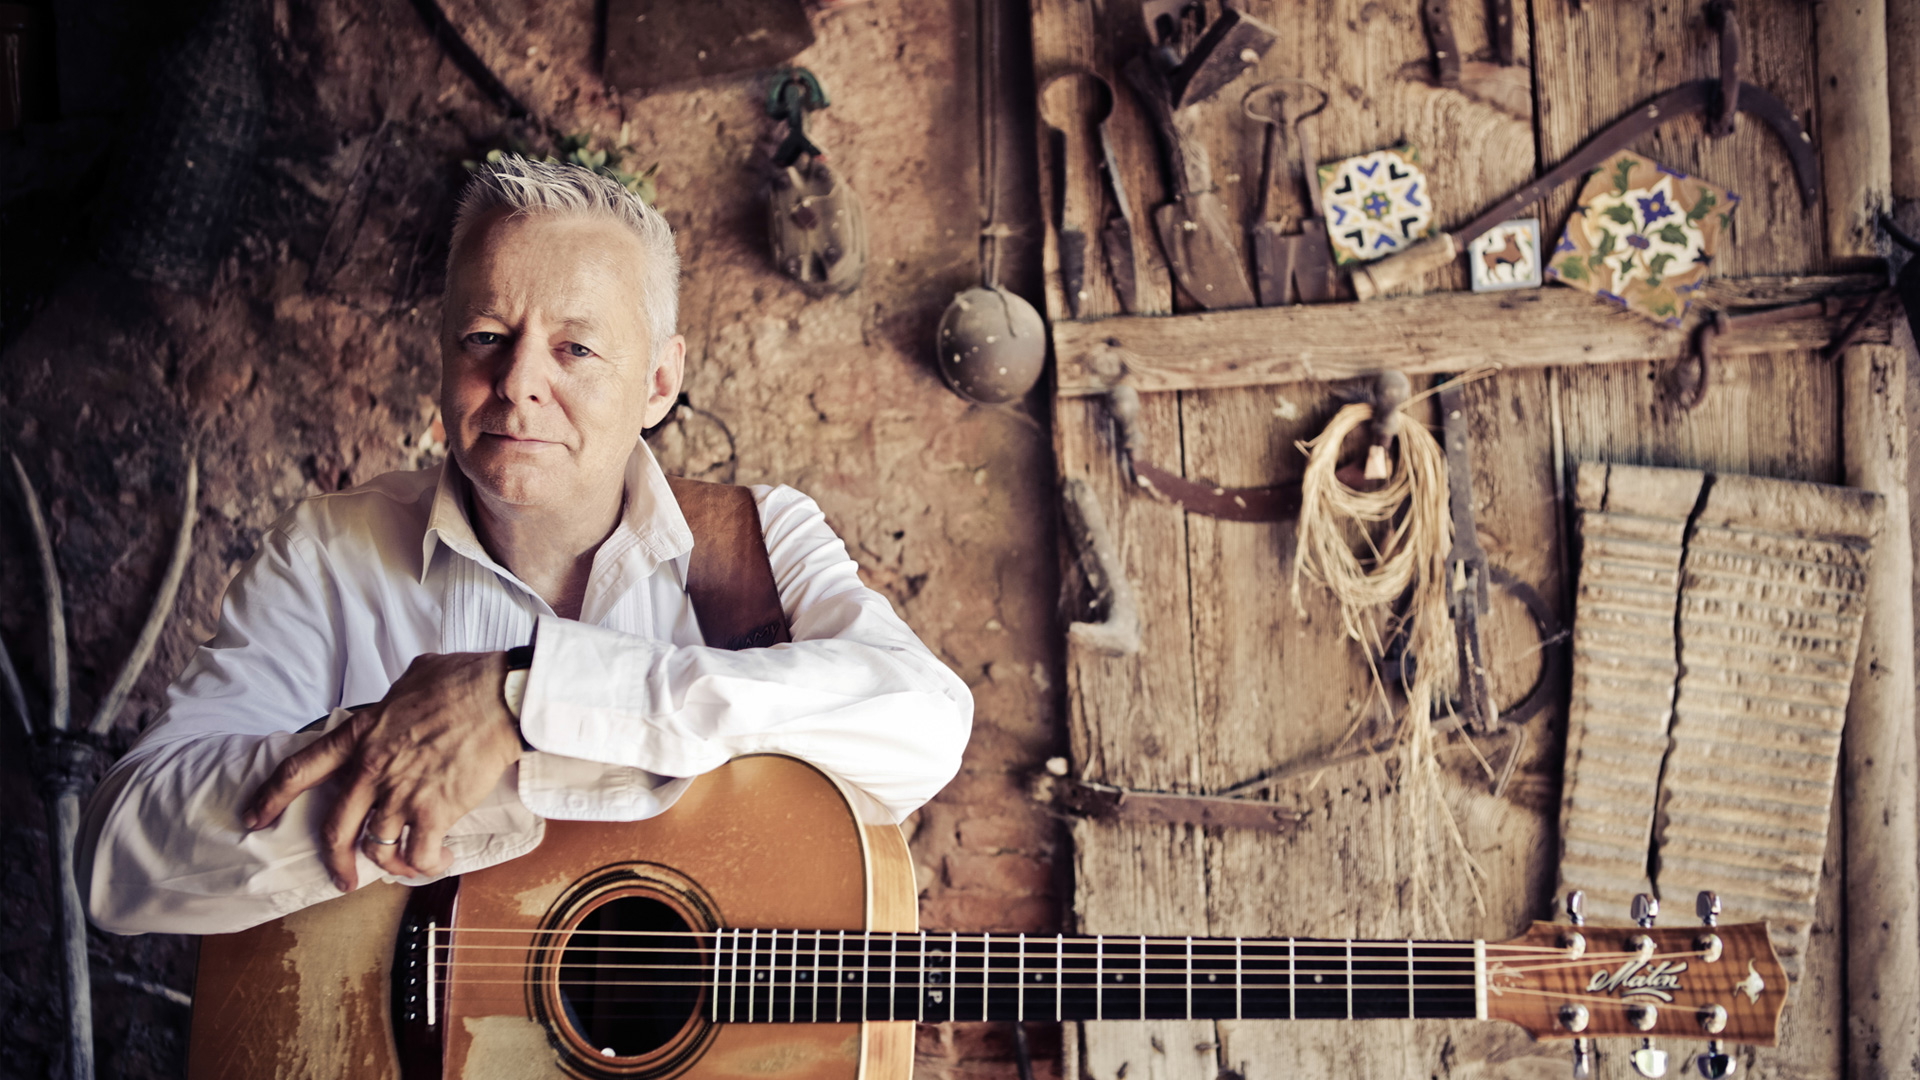 Tickets for Tommy Emmanuel Guitar Retreat Australia 2018 in Kalorama from Ticketbooth